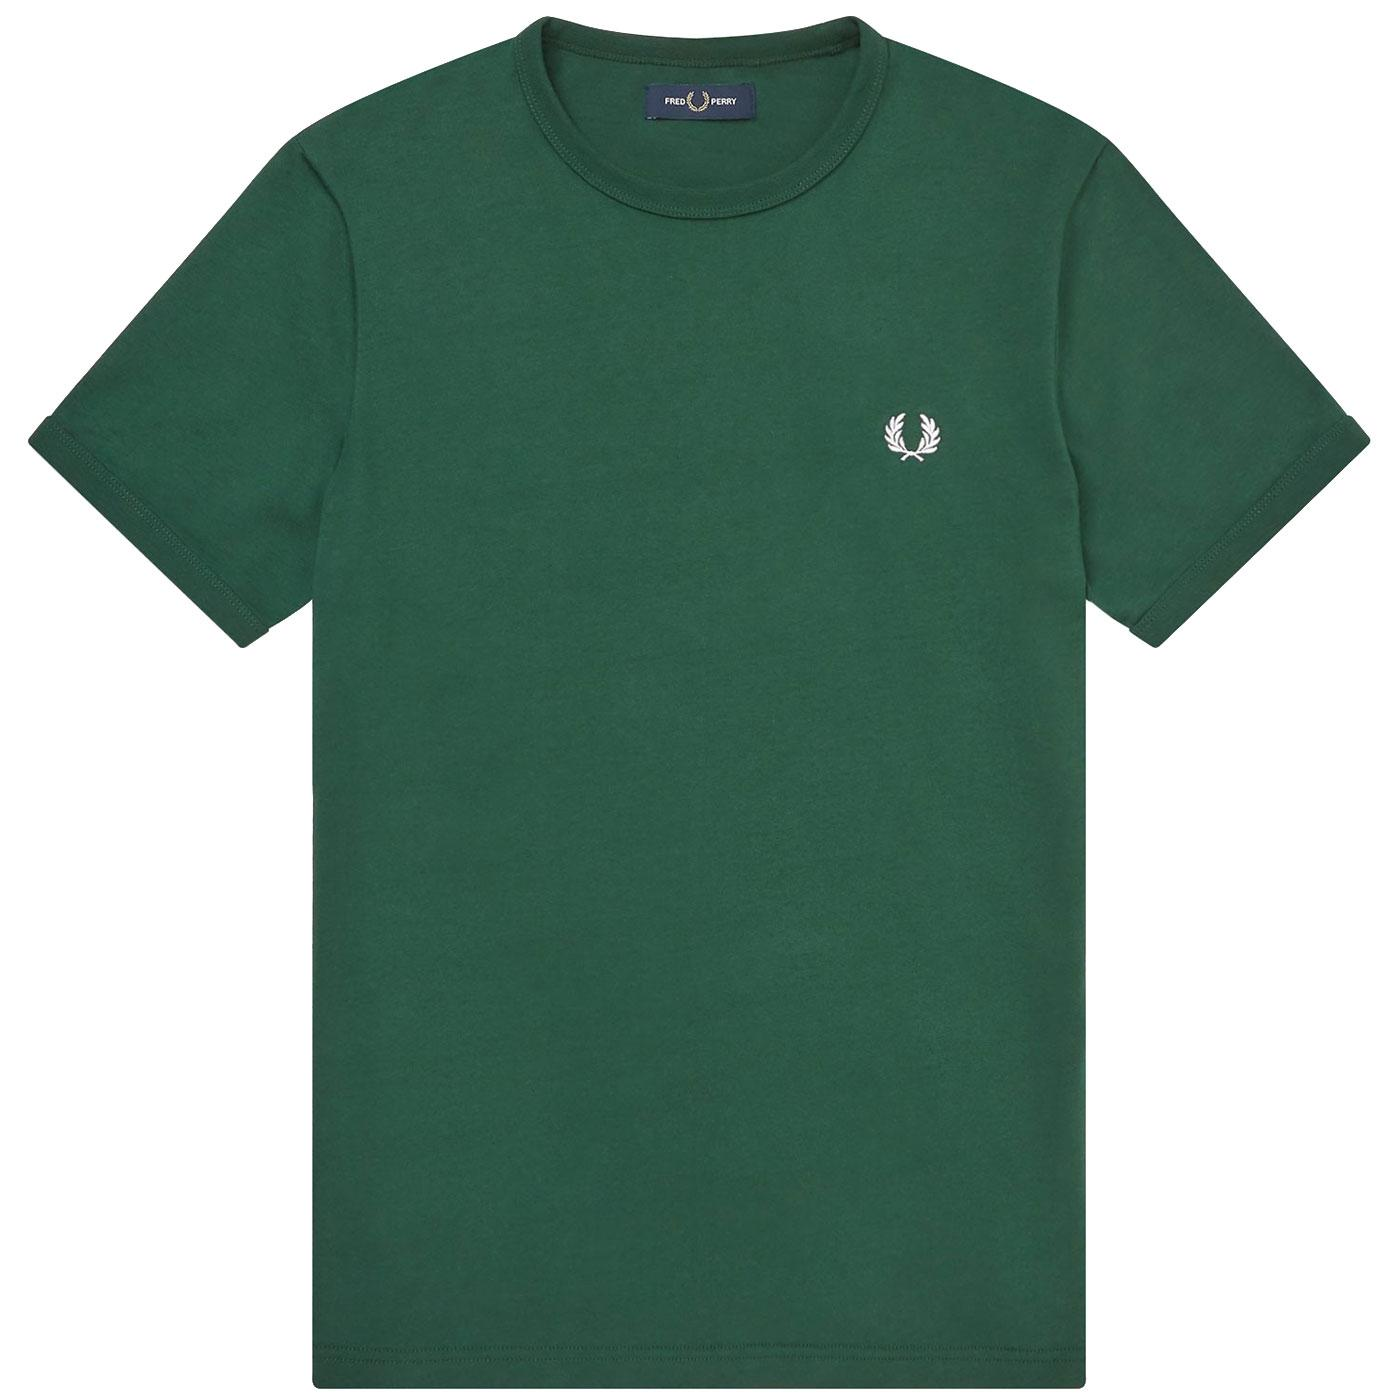 FRED PERRY Men's Crew Neck Ringer T-Shirt IVY